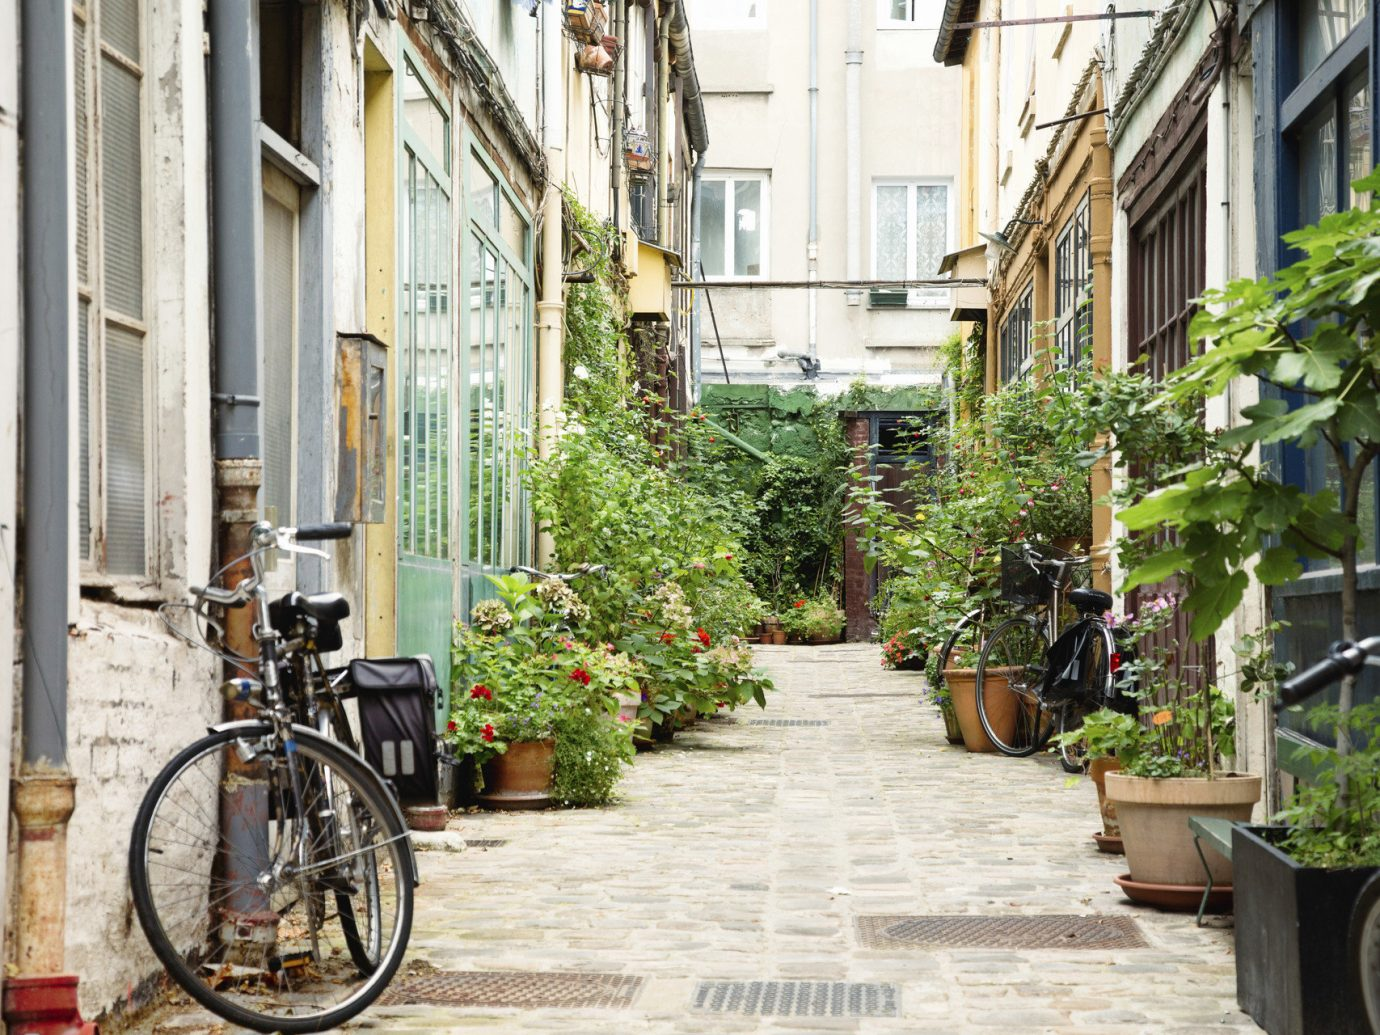 Romance Trip Ideas outdoor bicycle building way road sidewalk parked alley Town street neighbourhood scene lane City urban area human settlement residential area tourism infrastructure Courtyard vehicle flower stone scooter curb